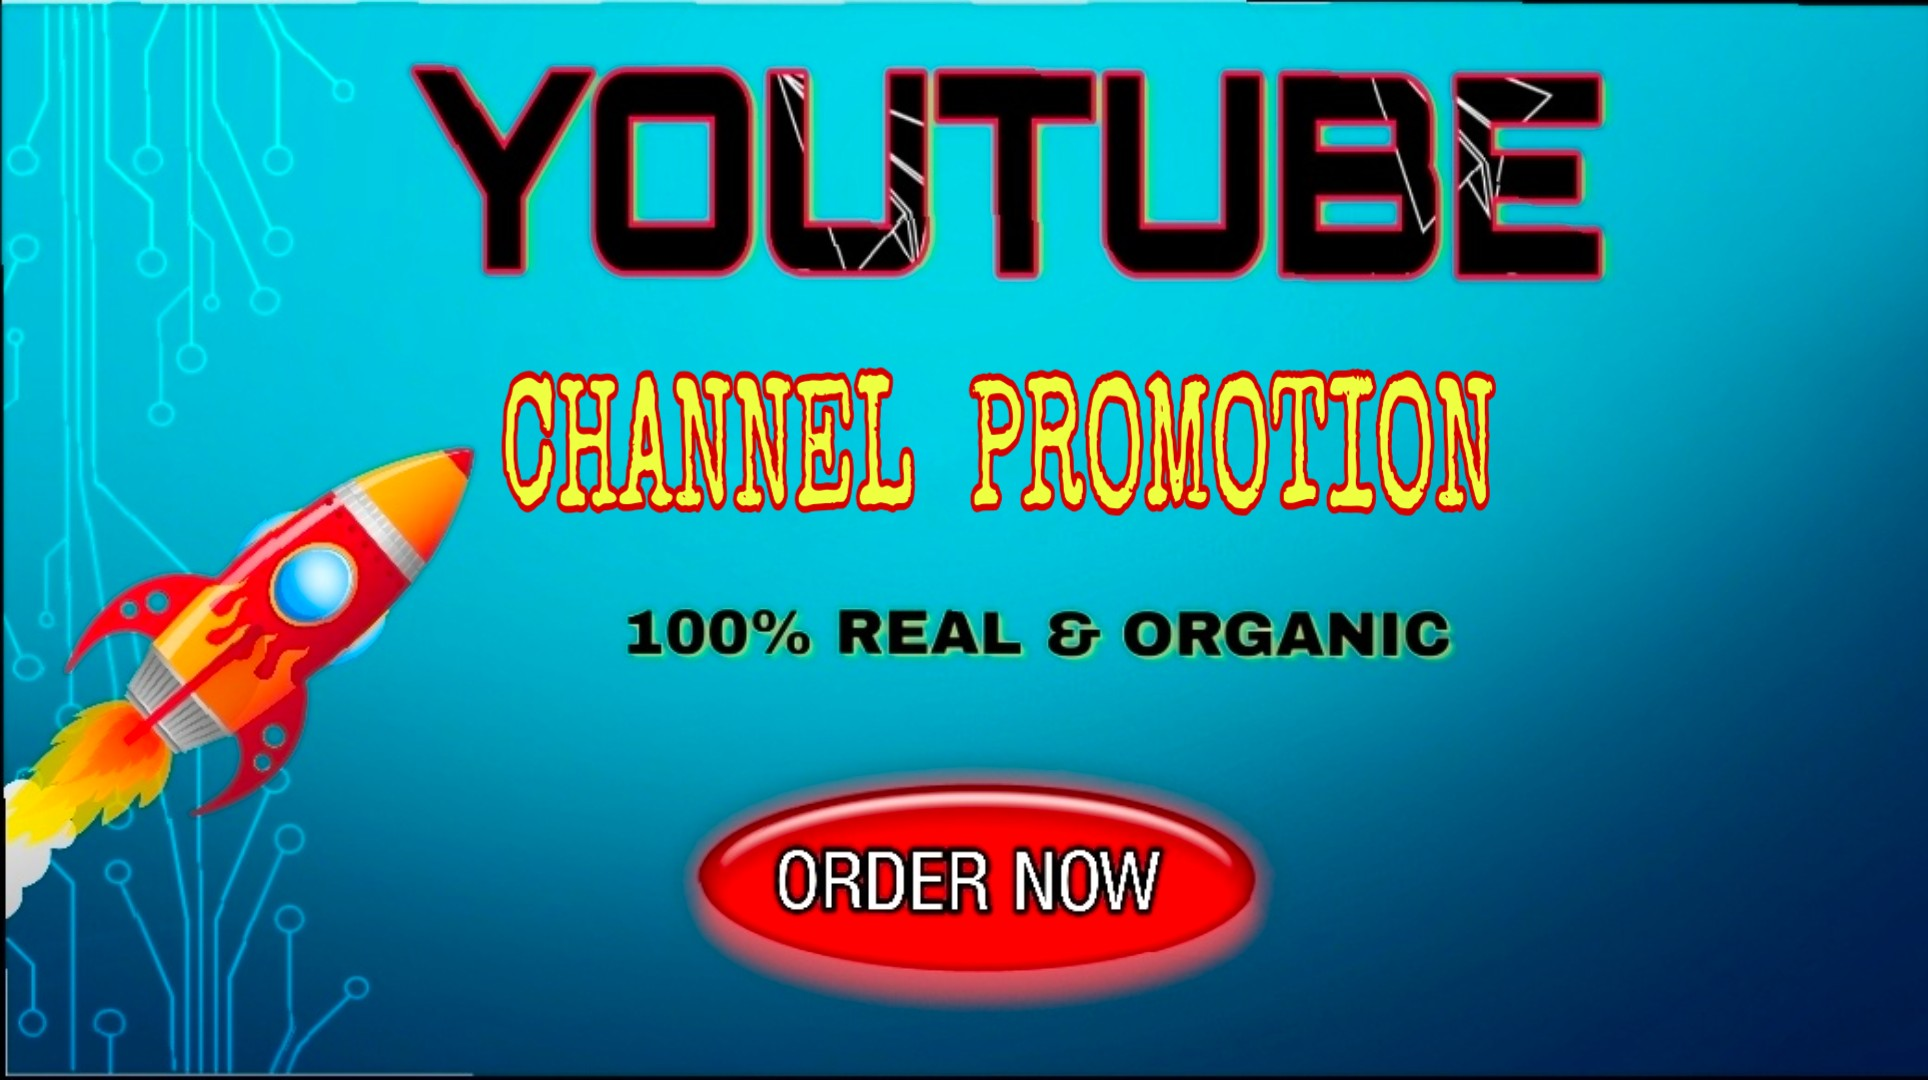 High Quality Chanel Promotion Social Media Marketing